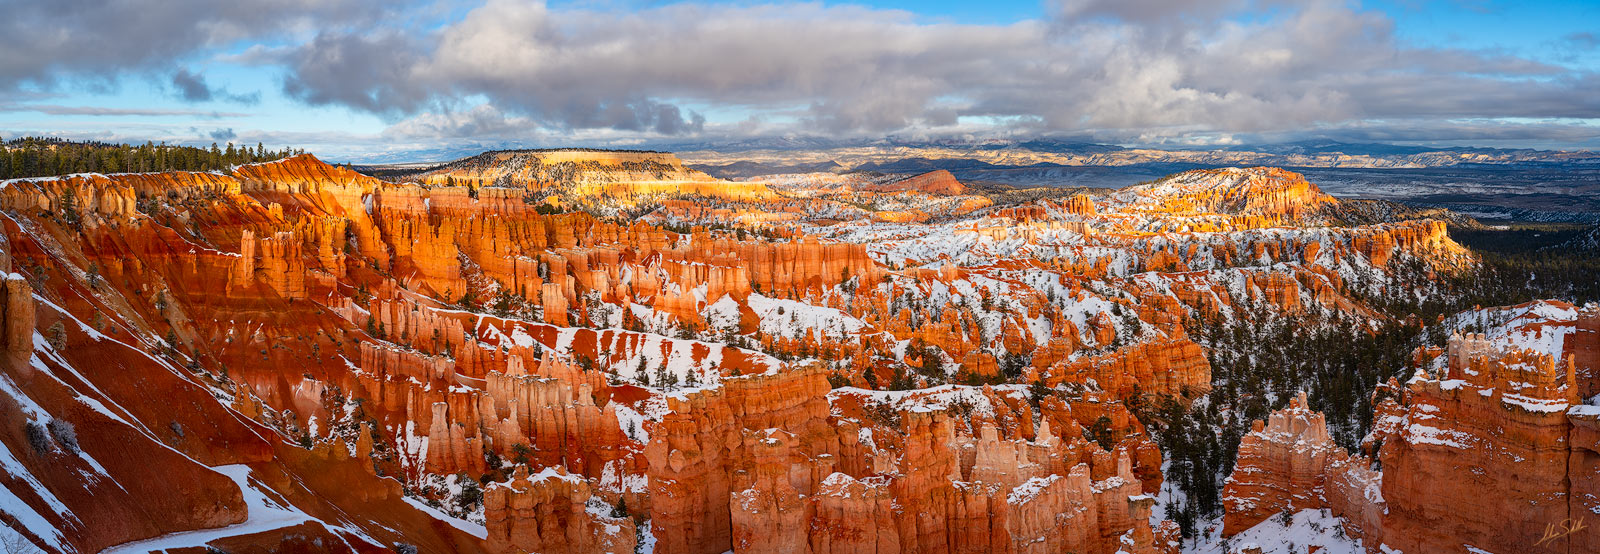 Bryce, Bryce Canyon, Bryce Canyon National Park, Bryce Canyon Panorama, Bryce Canyon Panoramic, Mighty Five, National Park, Pano, Panorama, Panorama of Bryce Canyon, Panoramic, Panoramic of Bryce Cany, photo